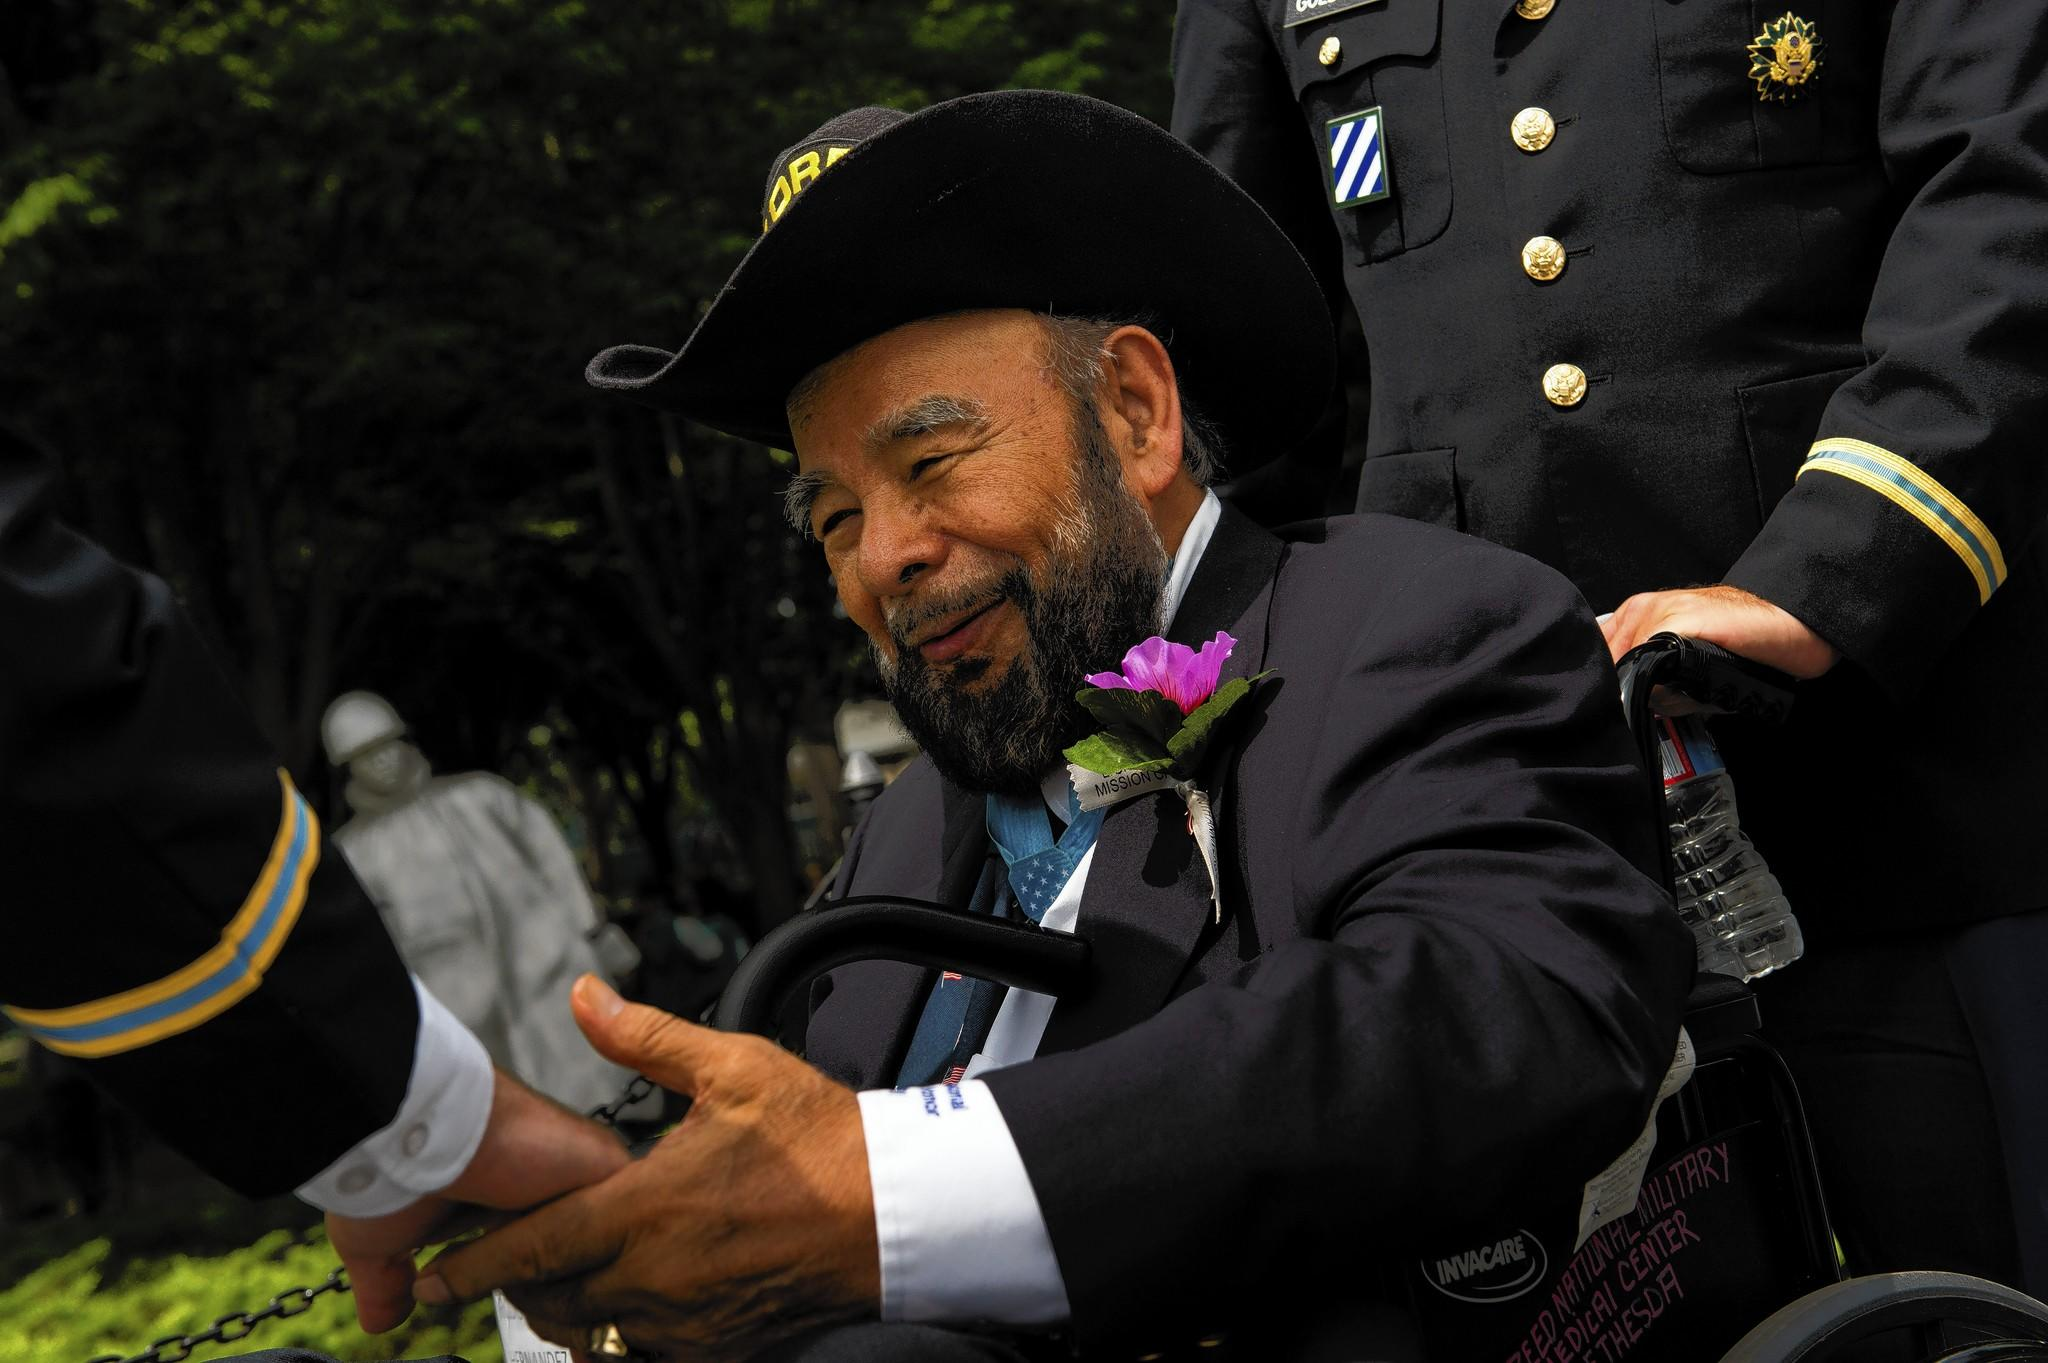 Rudy Hernandez greets friends at an event commemorating the 60th anniversary of the Korean War on July 27, 2013, in Washington, D.C. President Truman awarded him the Medal of Honor in April 1952.